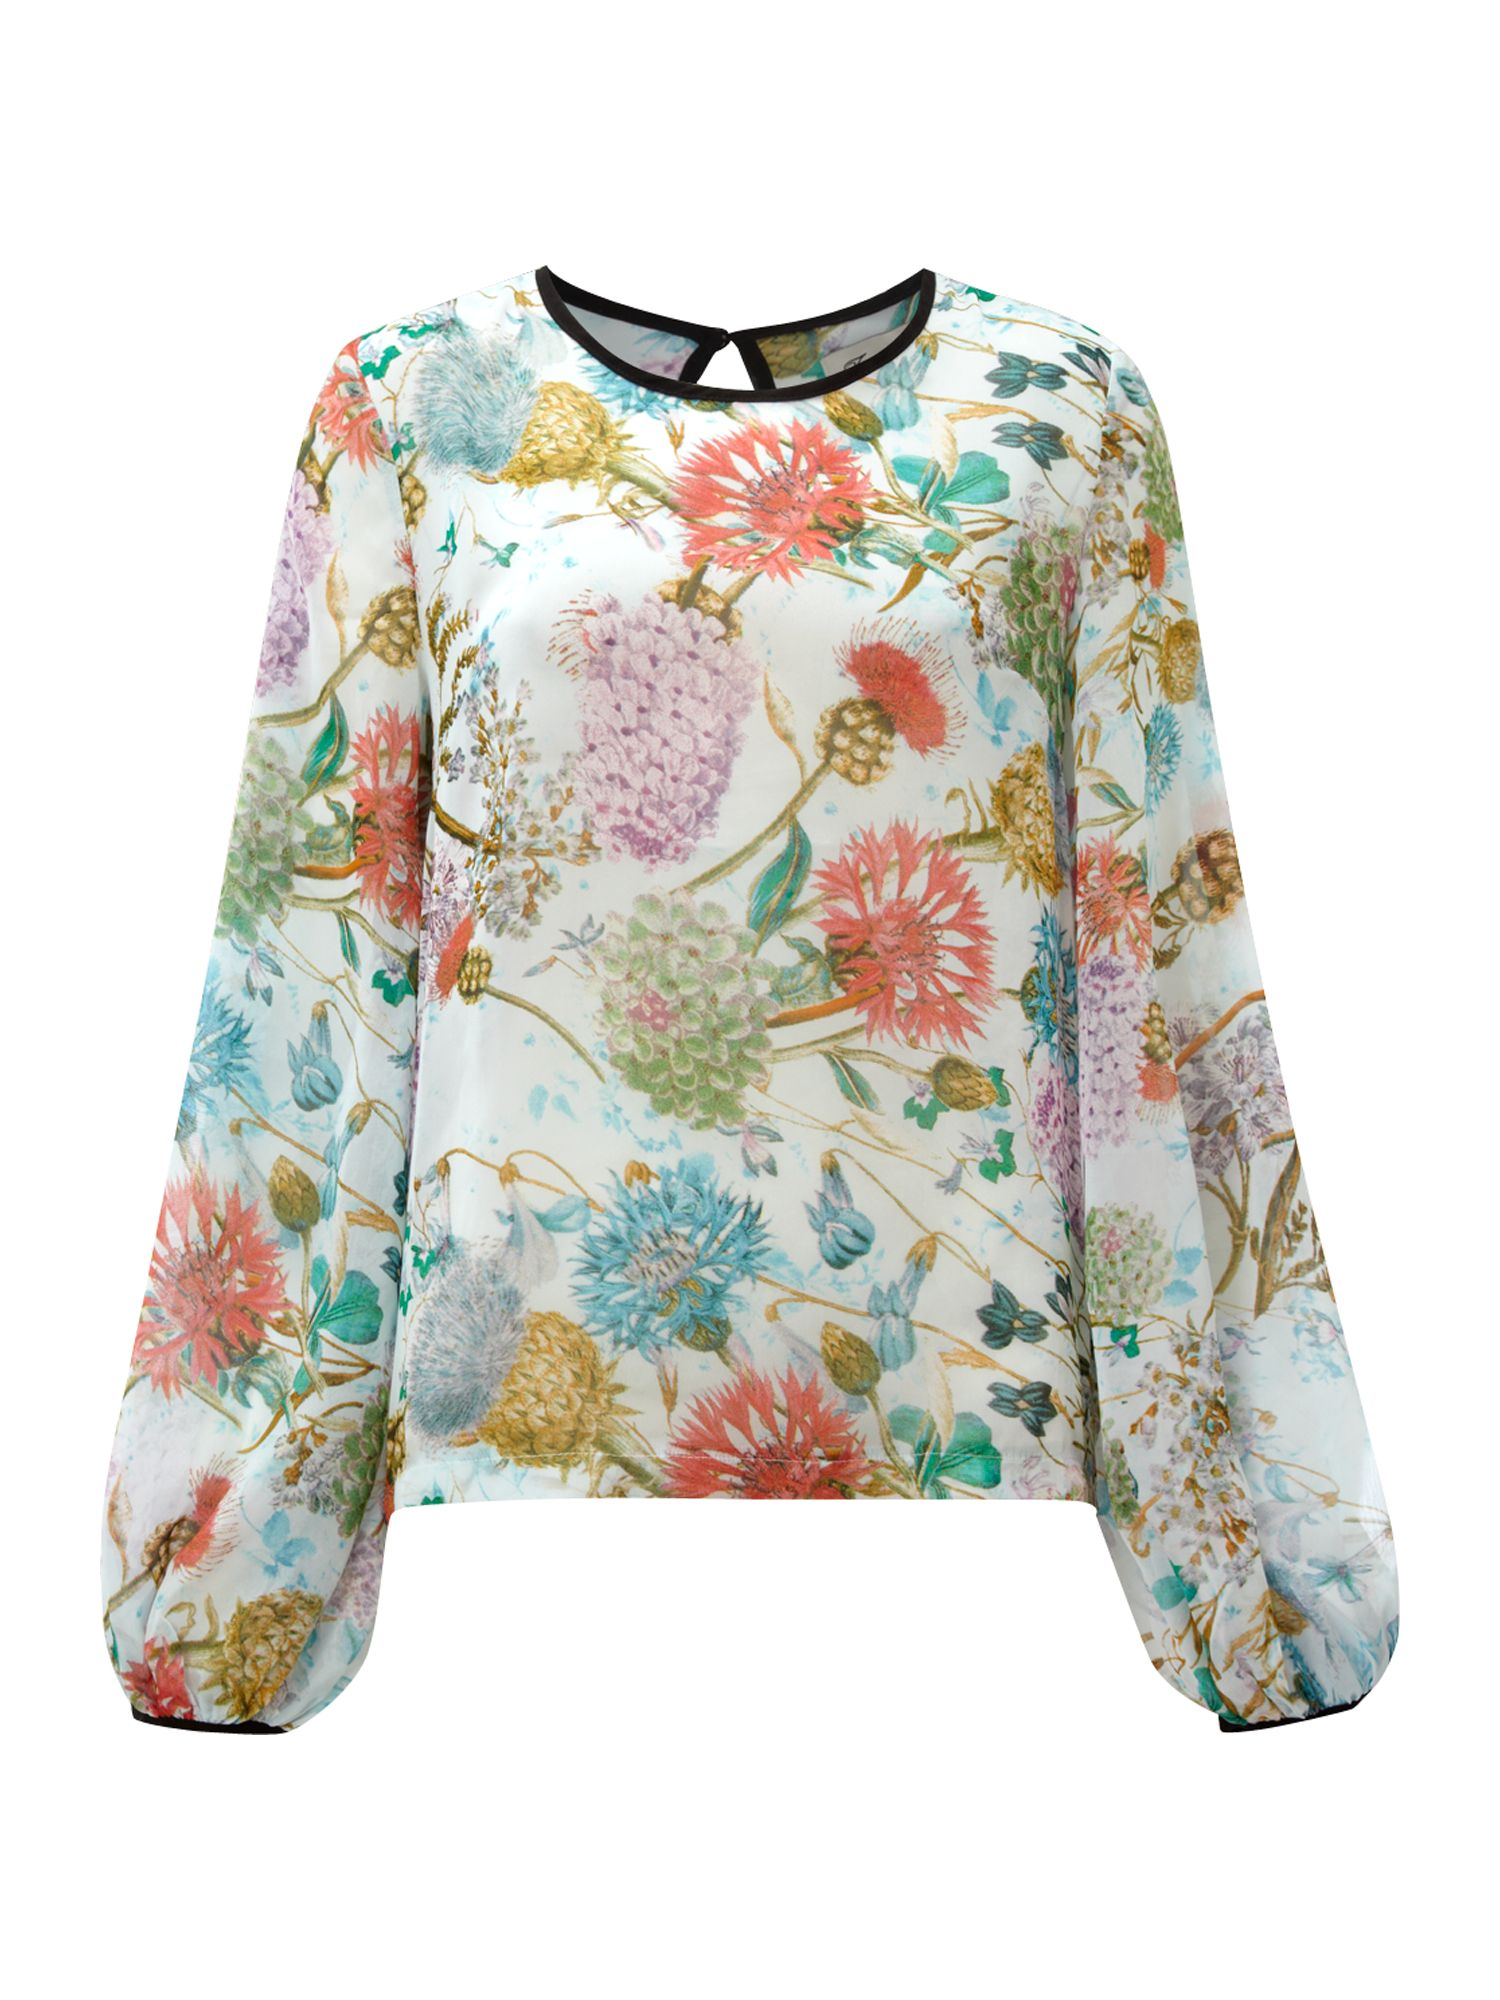 Women's True Decadence True decadence long sleeve top, Multi-Coloured